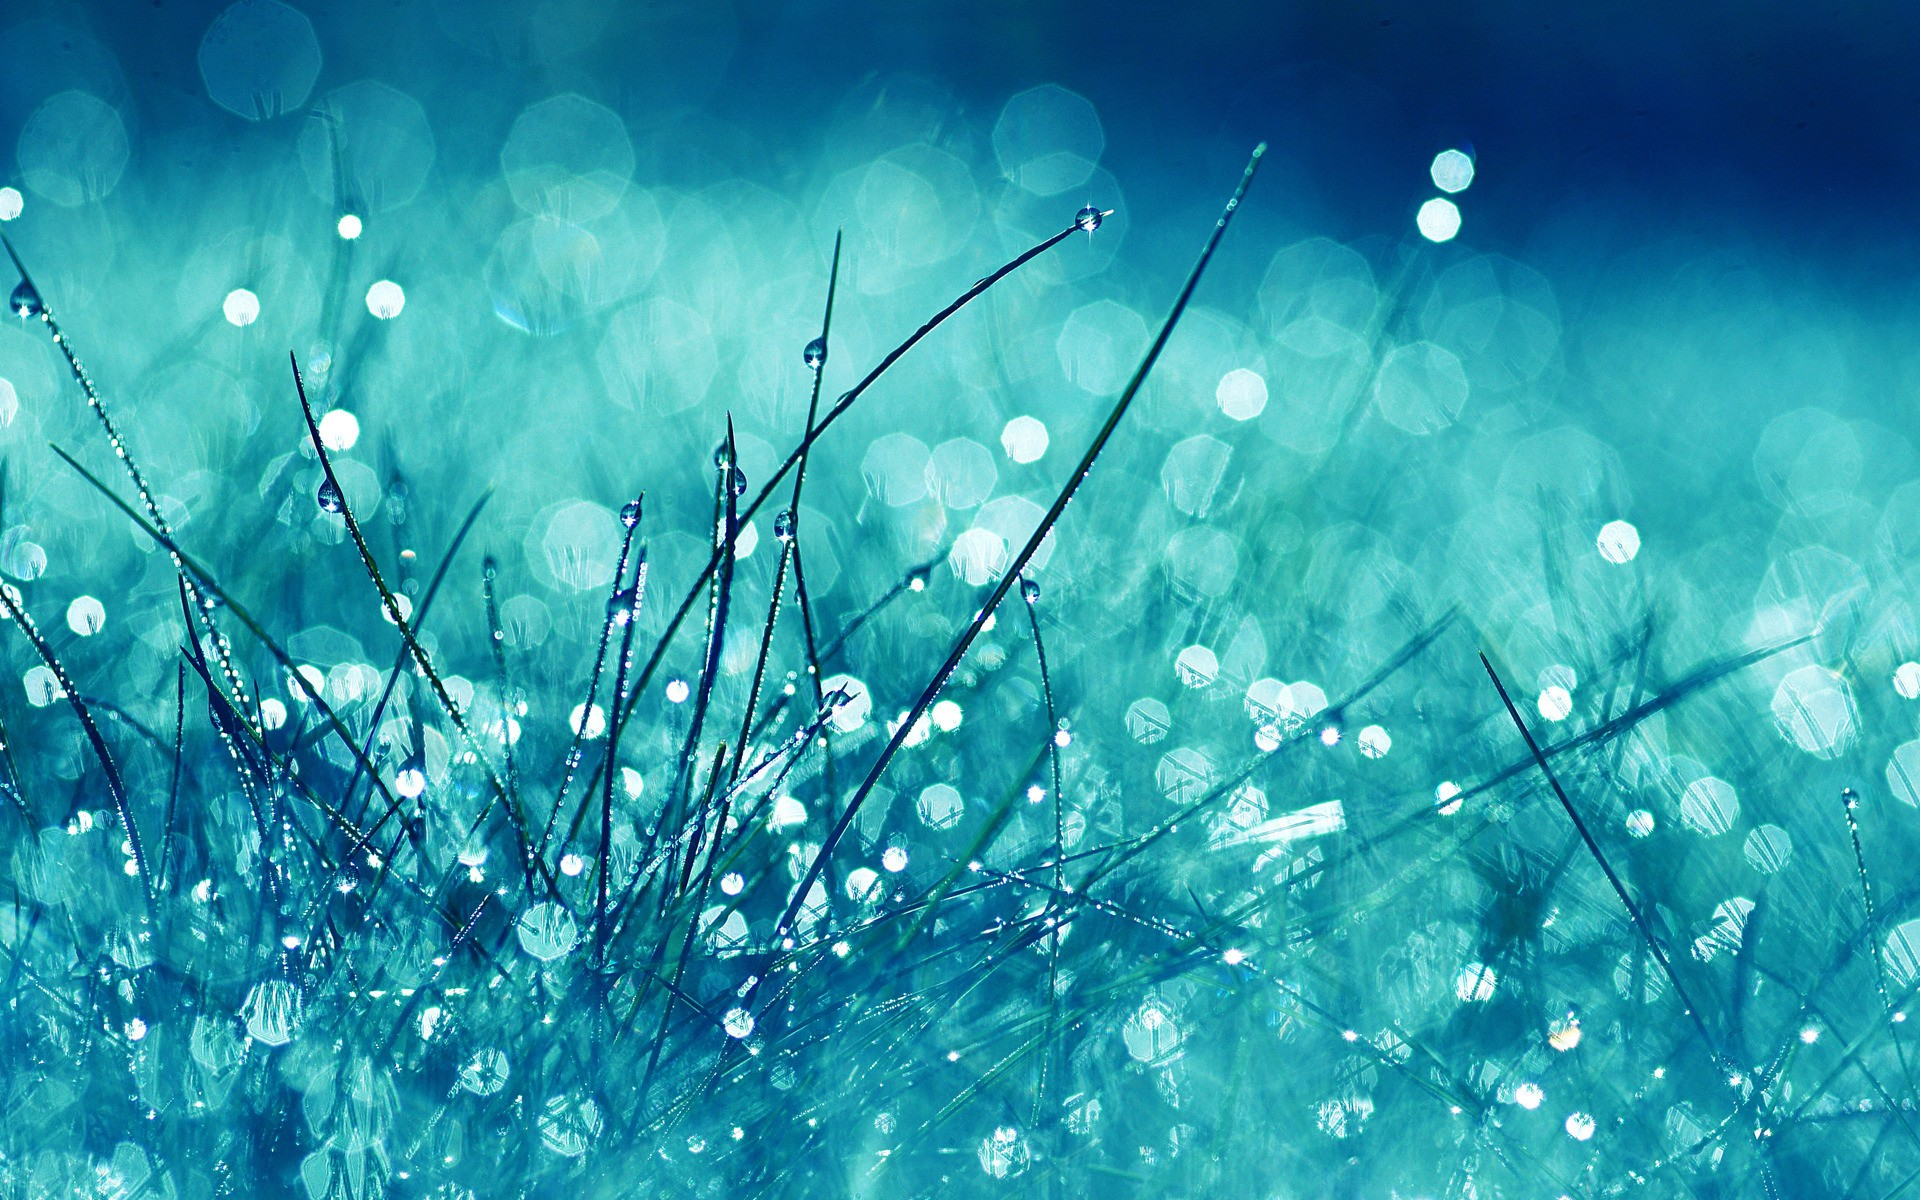 Dew Drops on the Grass Wallpaper HD 1023.1 Kb